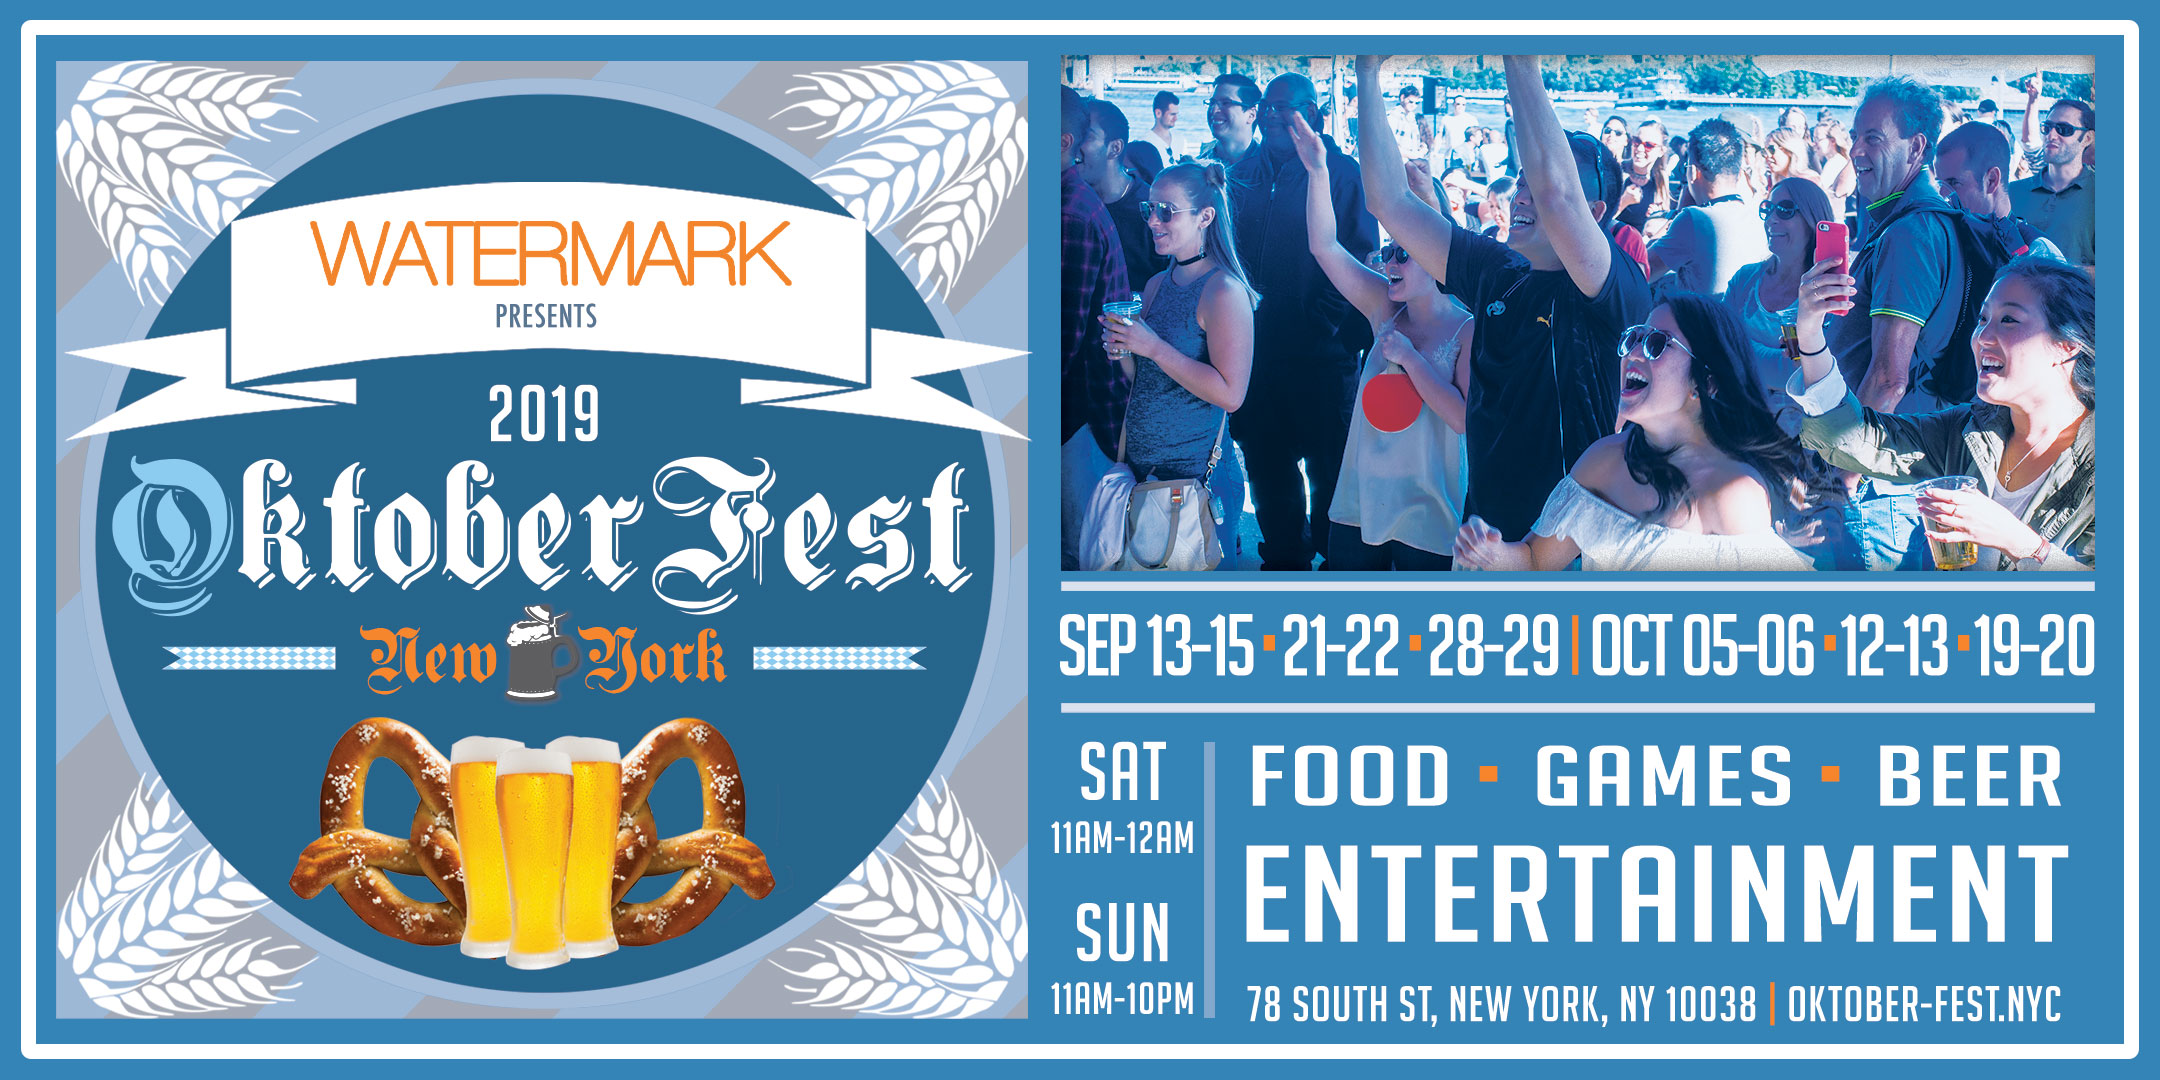 OktoberFest 2019 NYC at Watermark